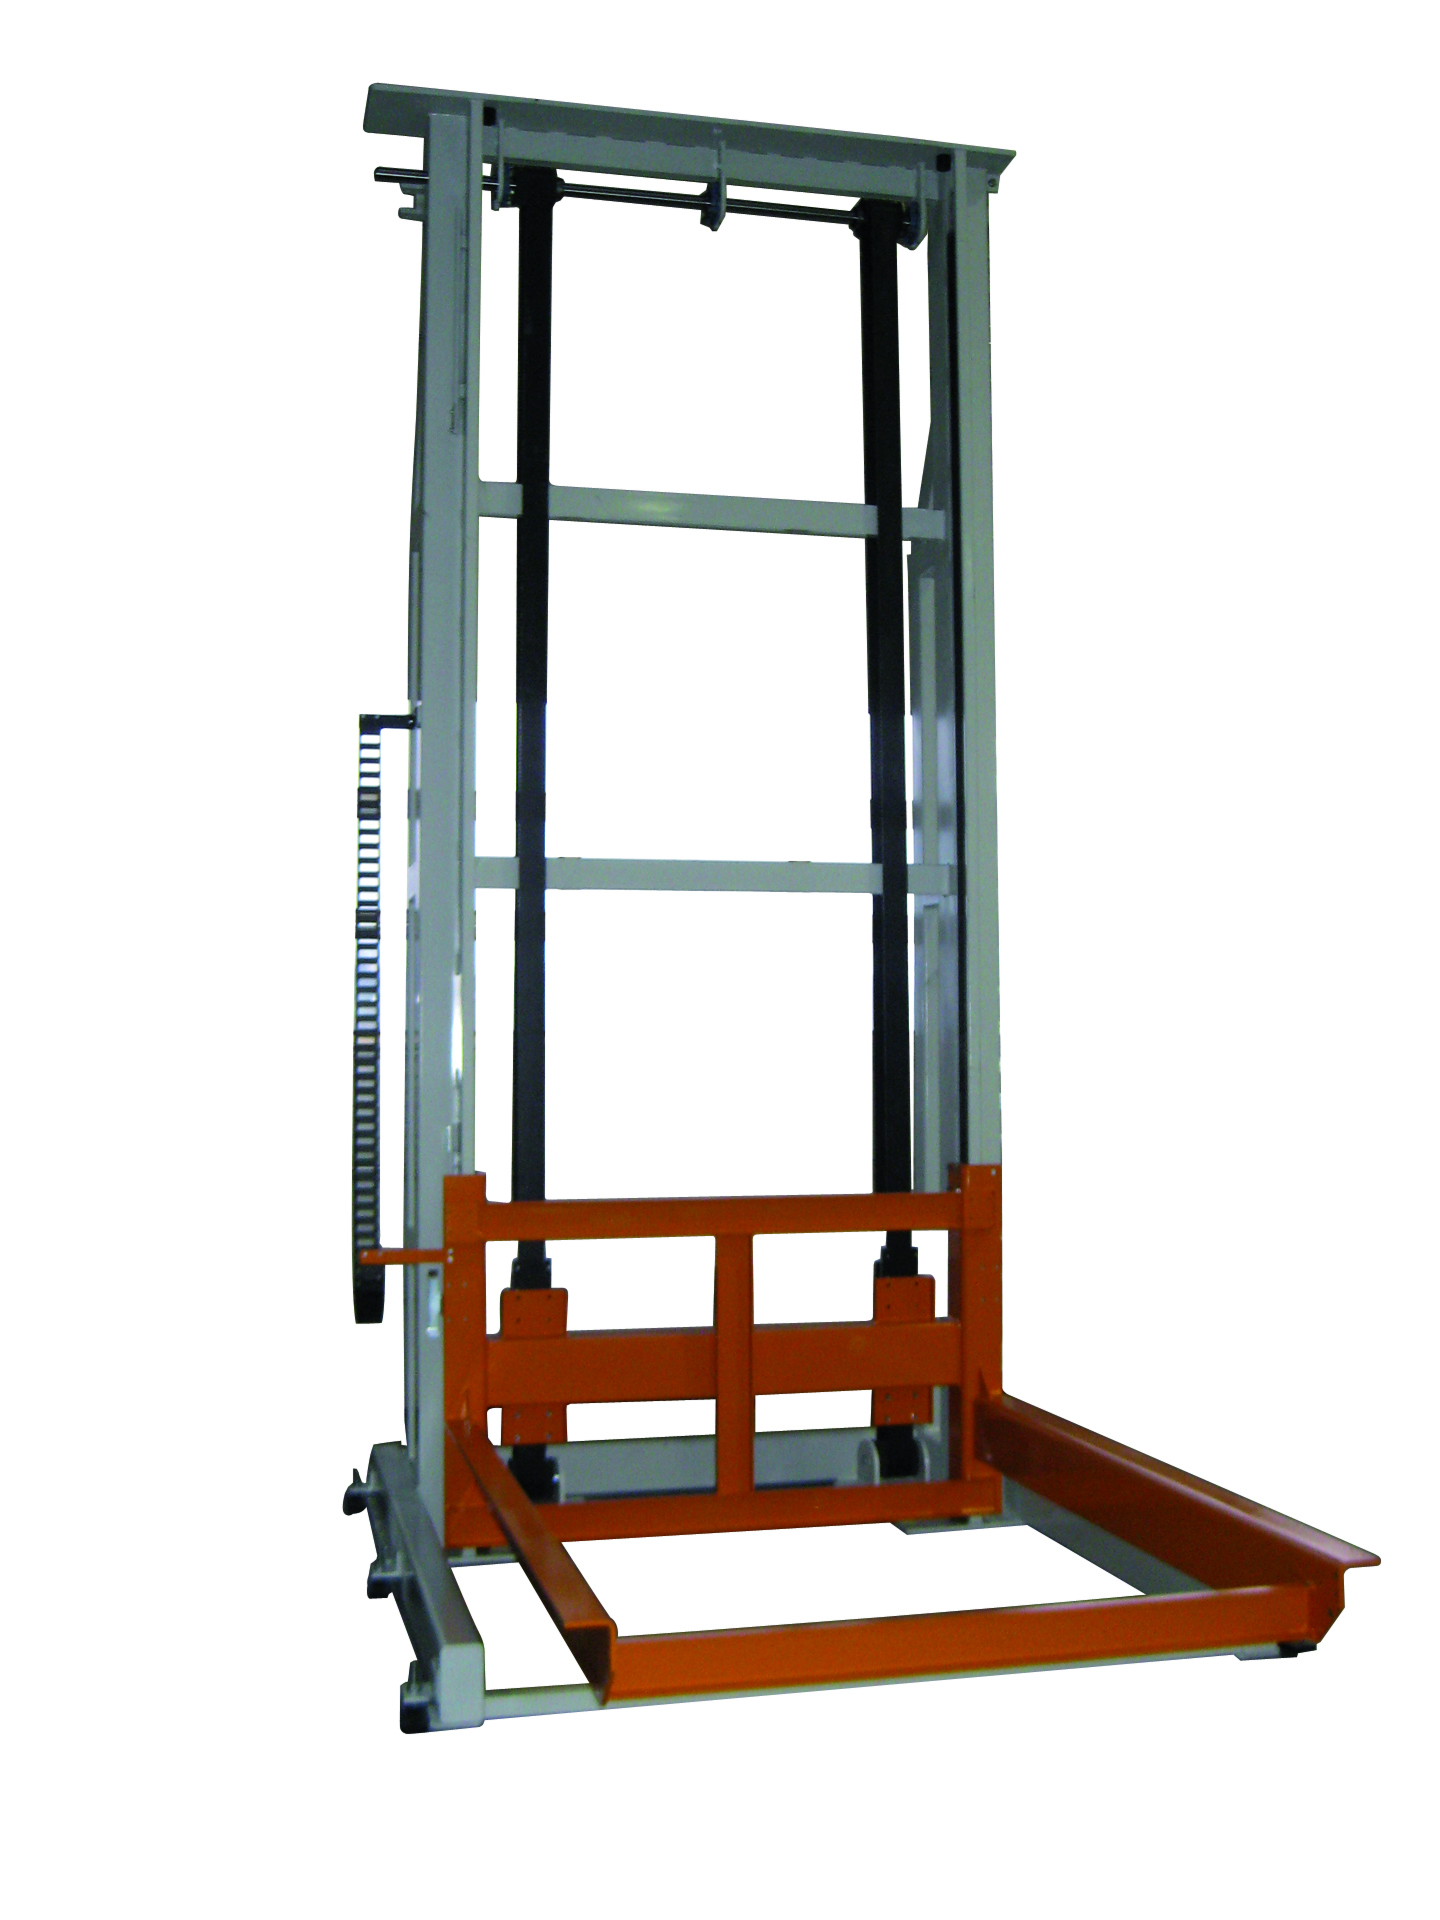 column lifting system - belt lifter